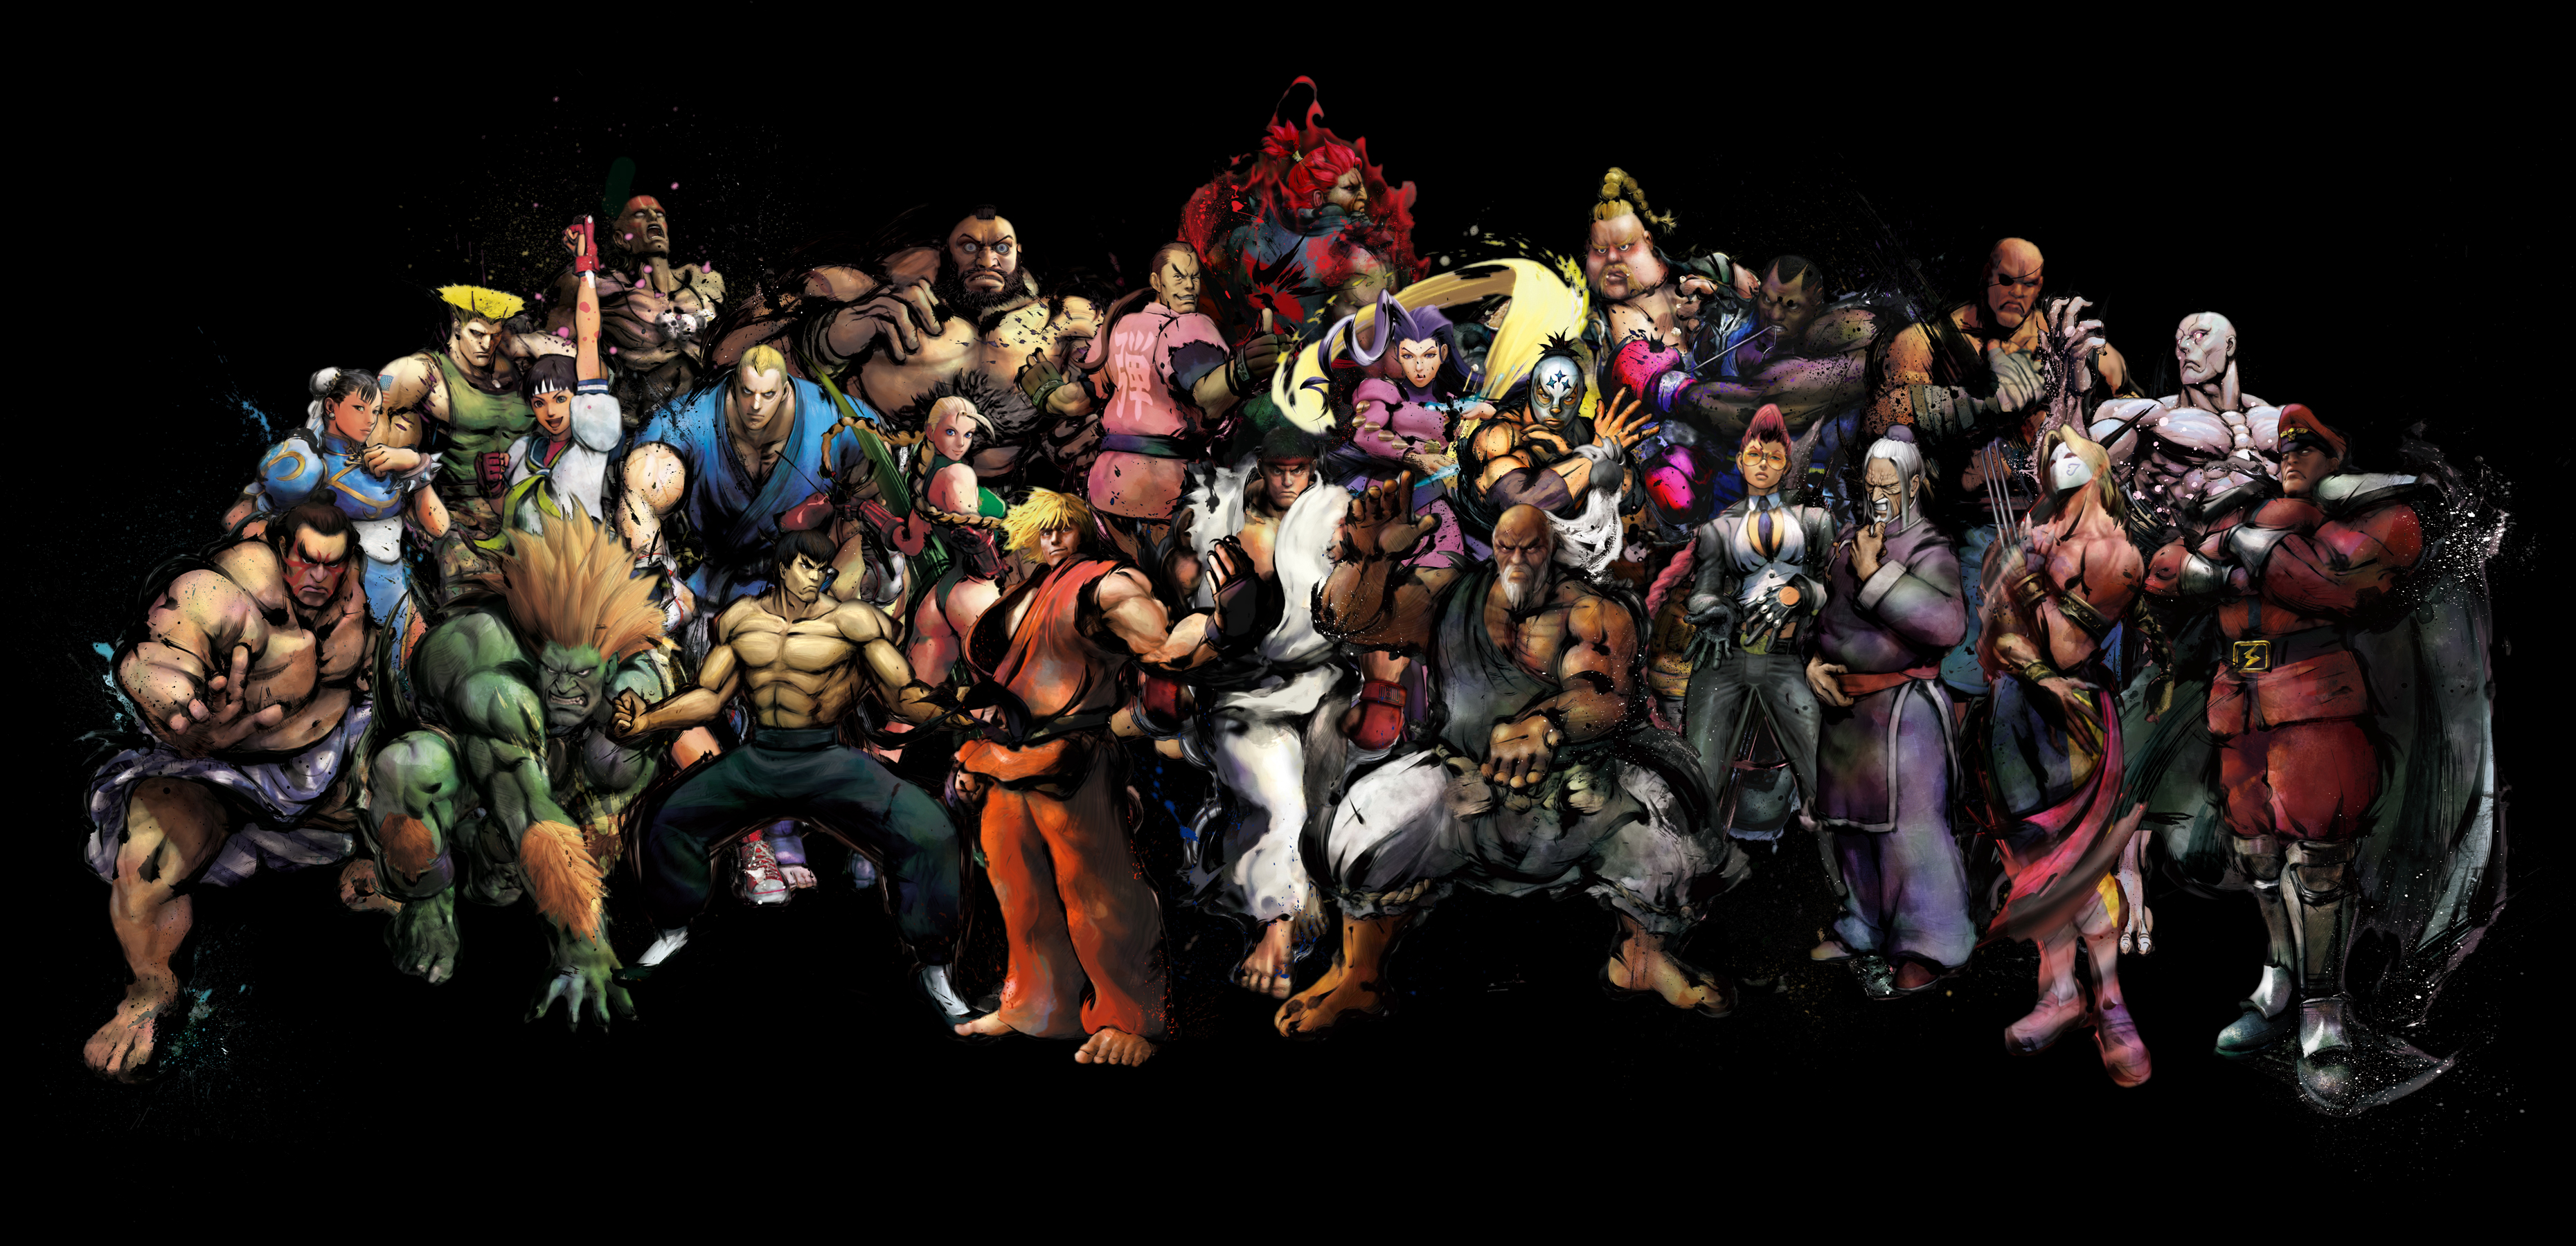 In Street Fighter 1536507 Hd Wallpaper Backgrounds Download